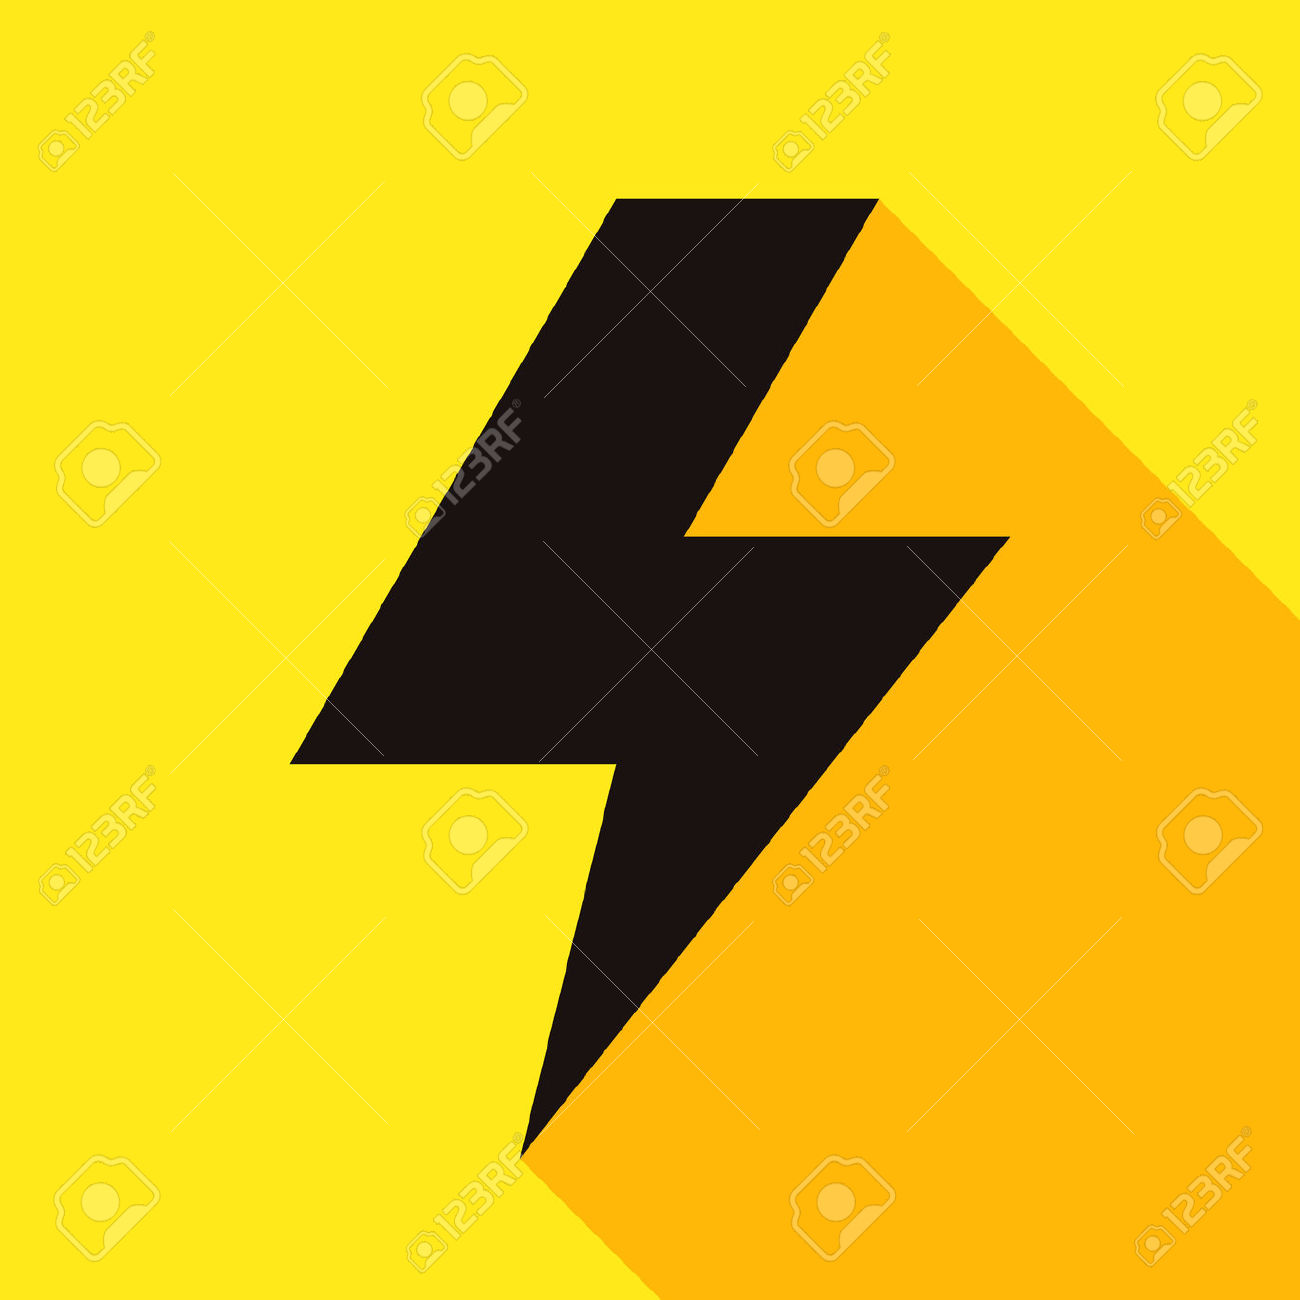 cartoon lighting bolt free download best cartoon lighting bolt on